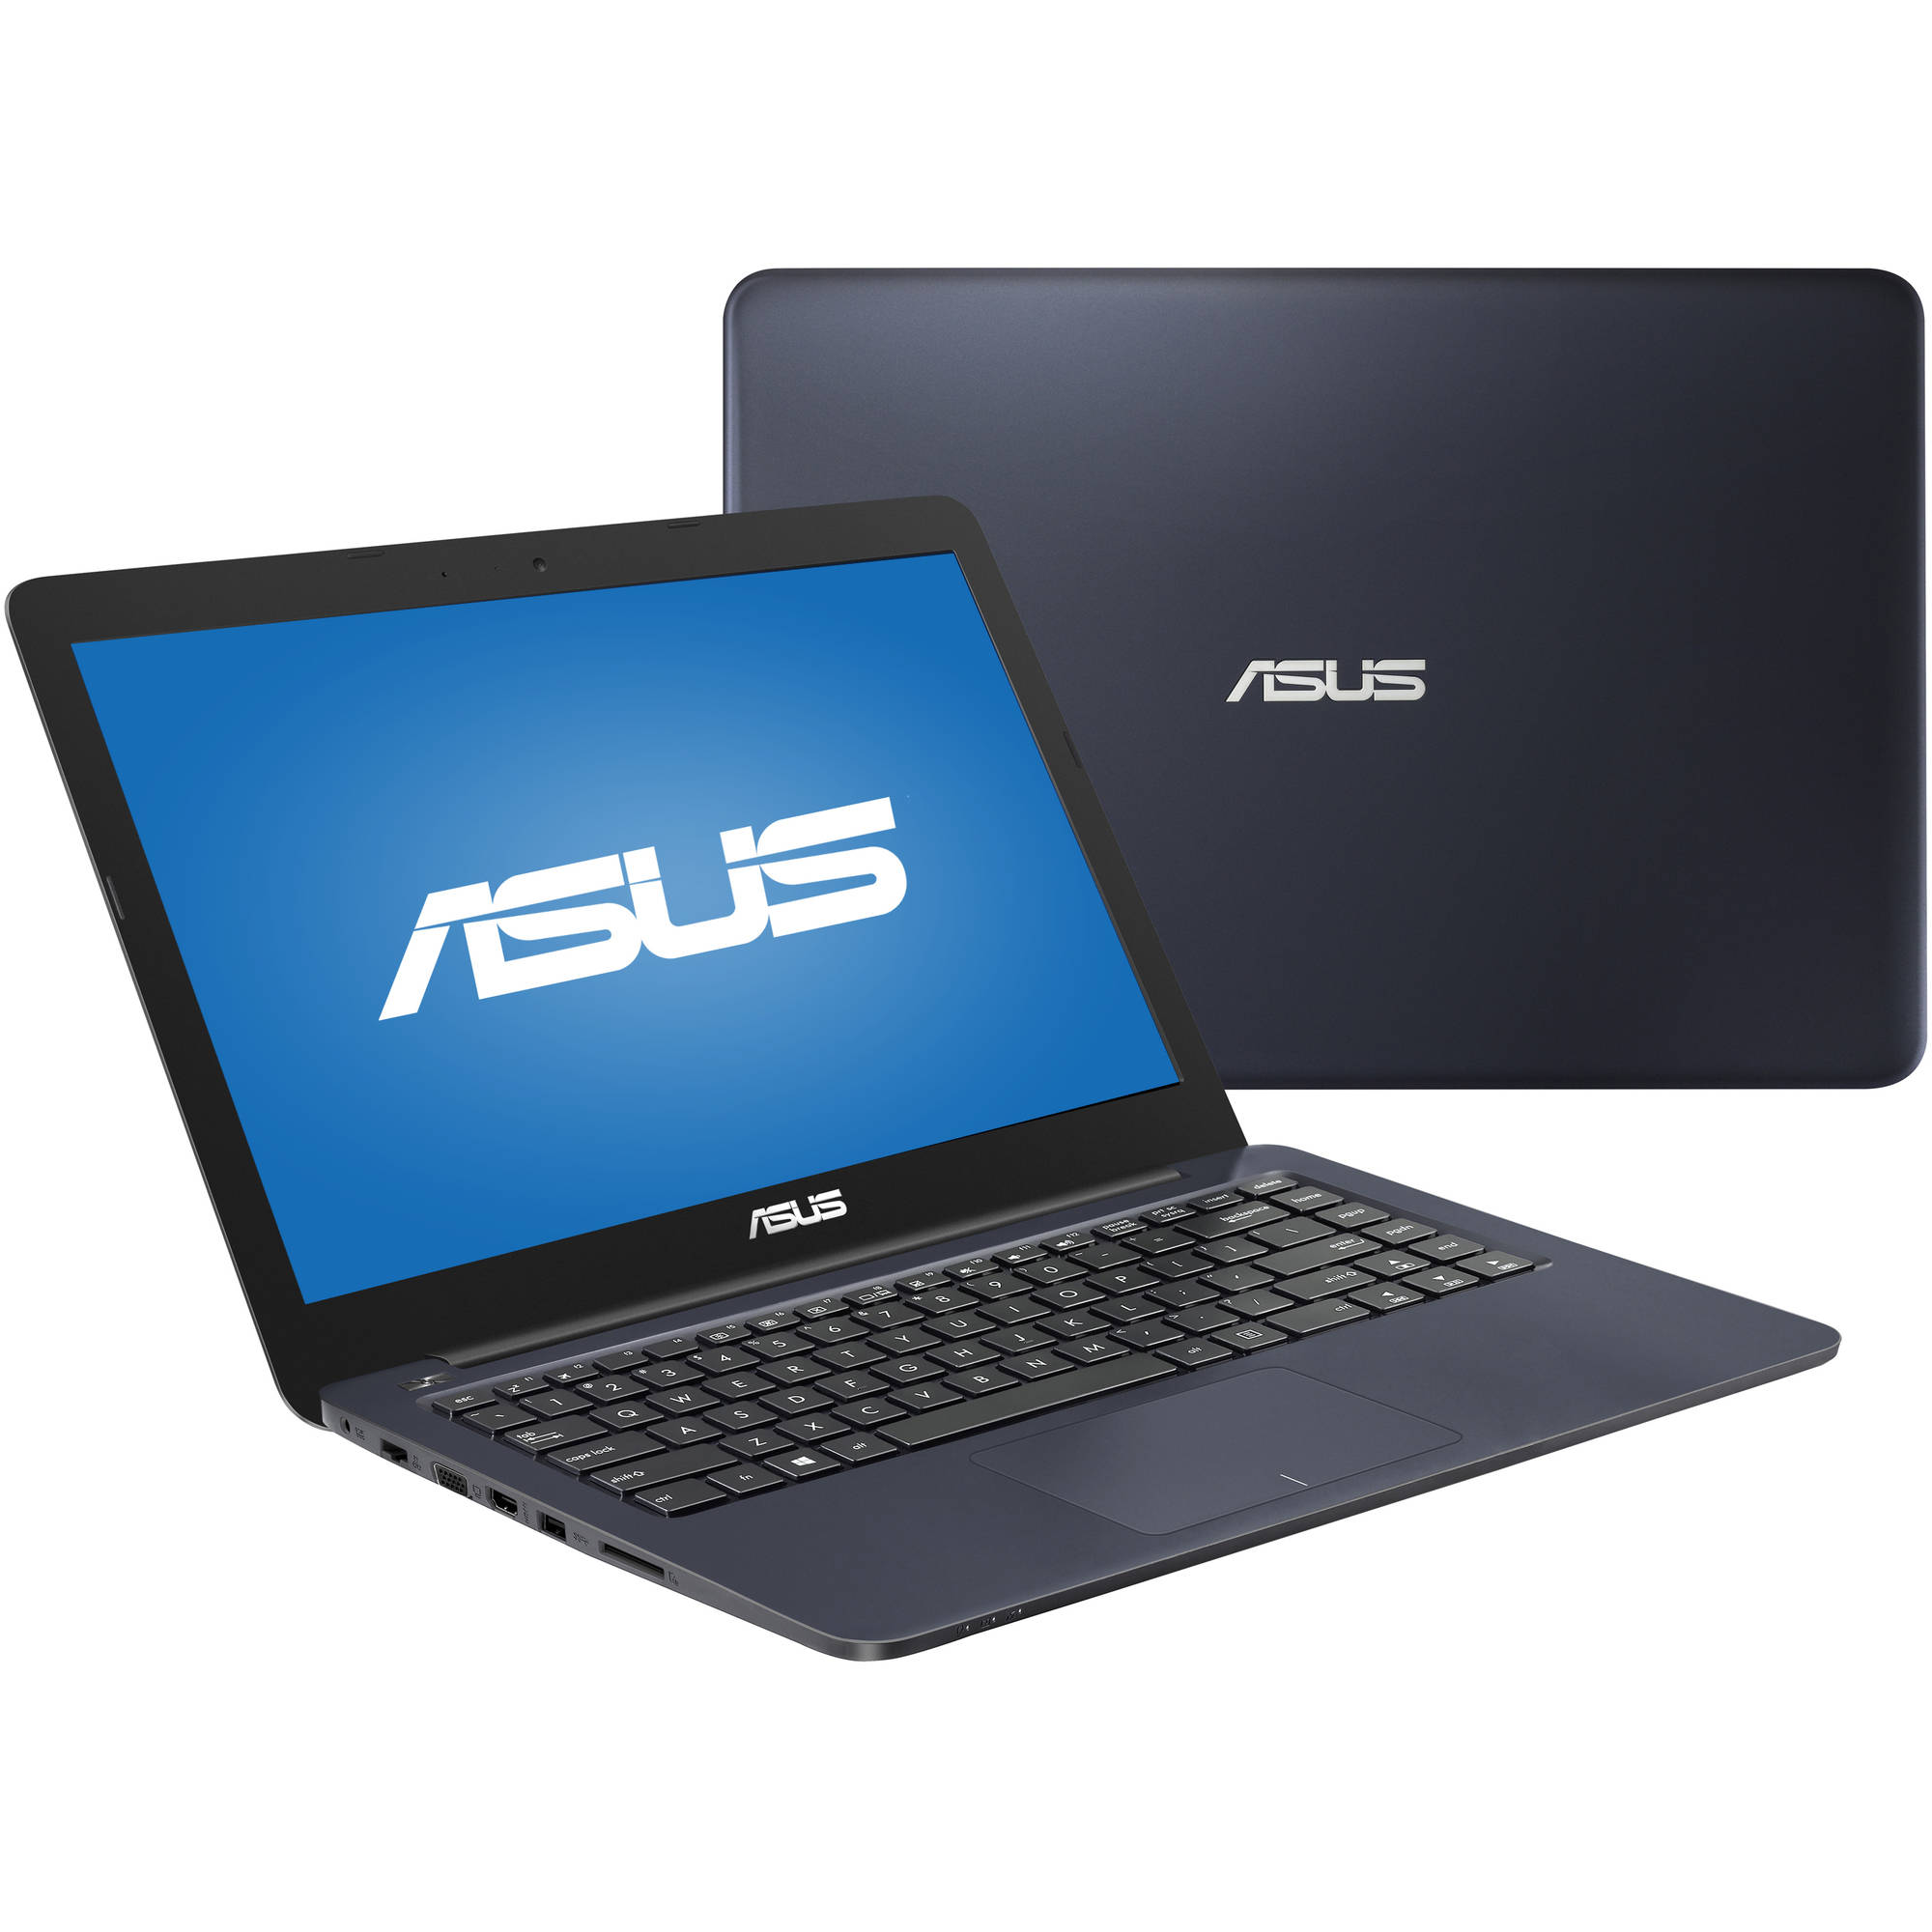 "ASUS Dark Blue 14"" EeeBook Laptop PC with Intel Celeron N3060 Dual-Core Processor, 4GB Memory, 32GB eMMC Flash Memory Drive and Windows 10 Home"